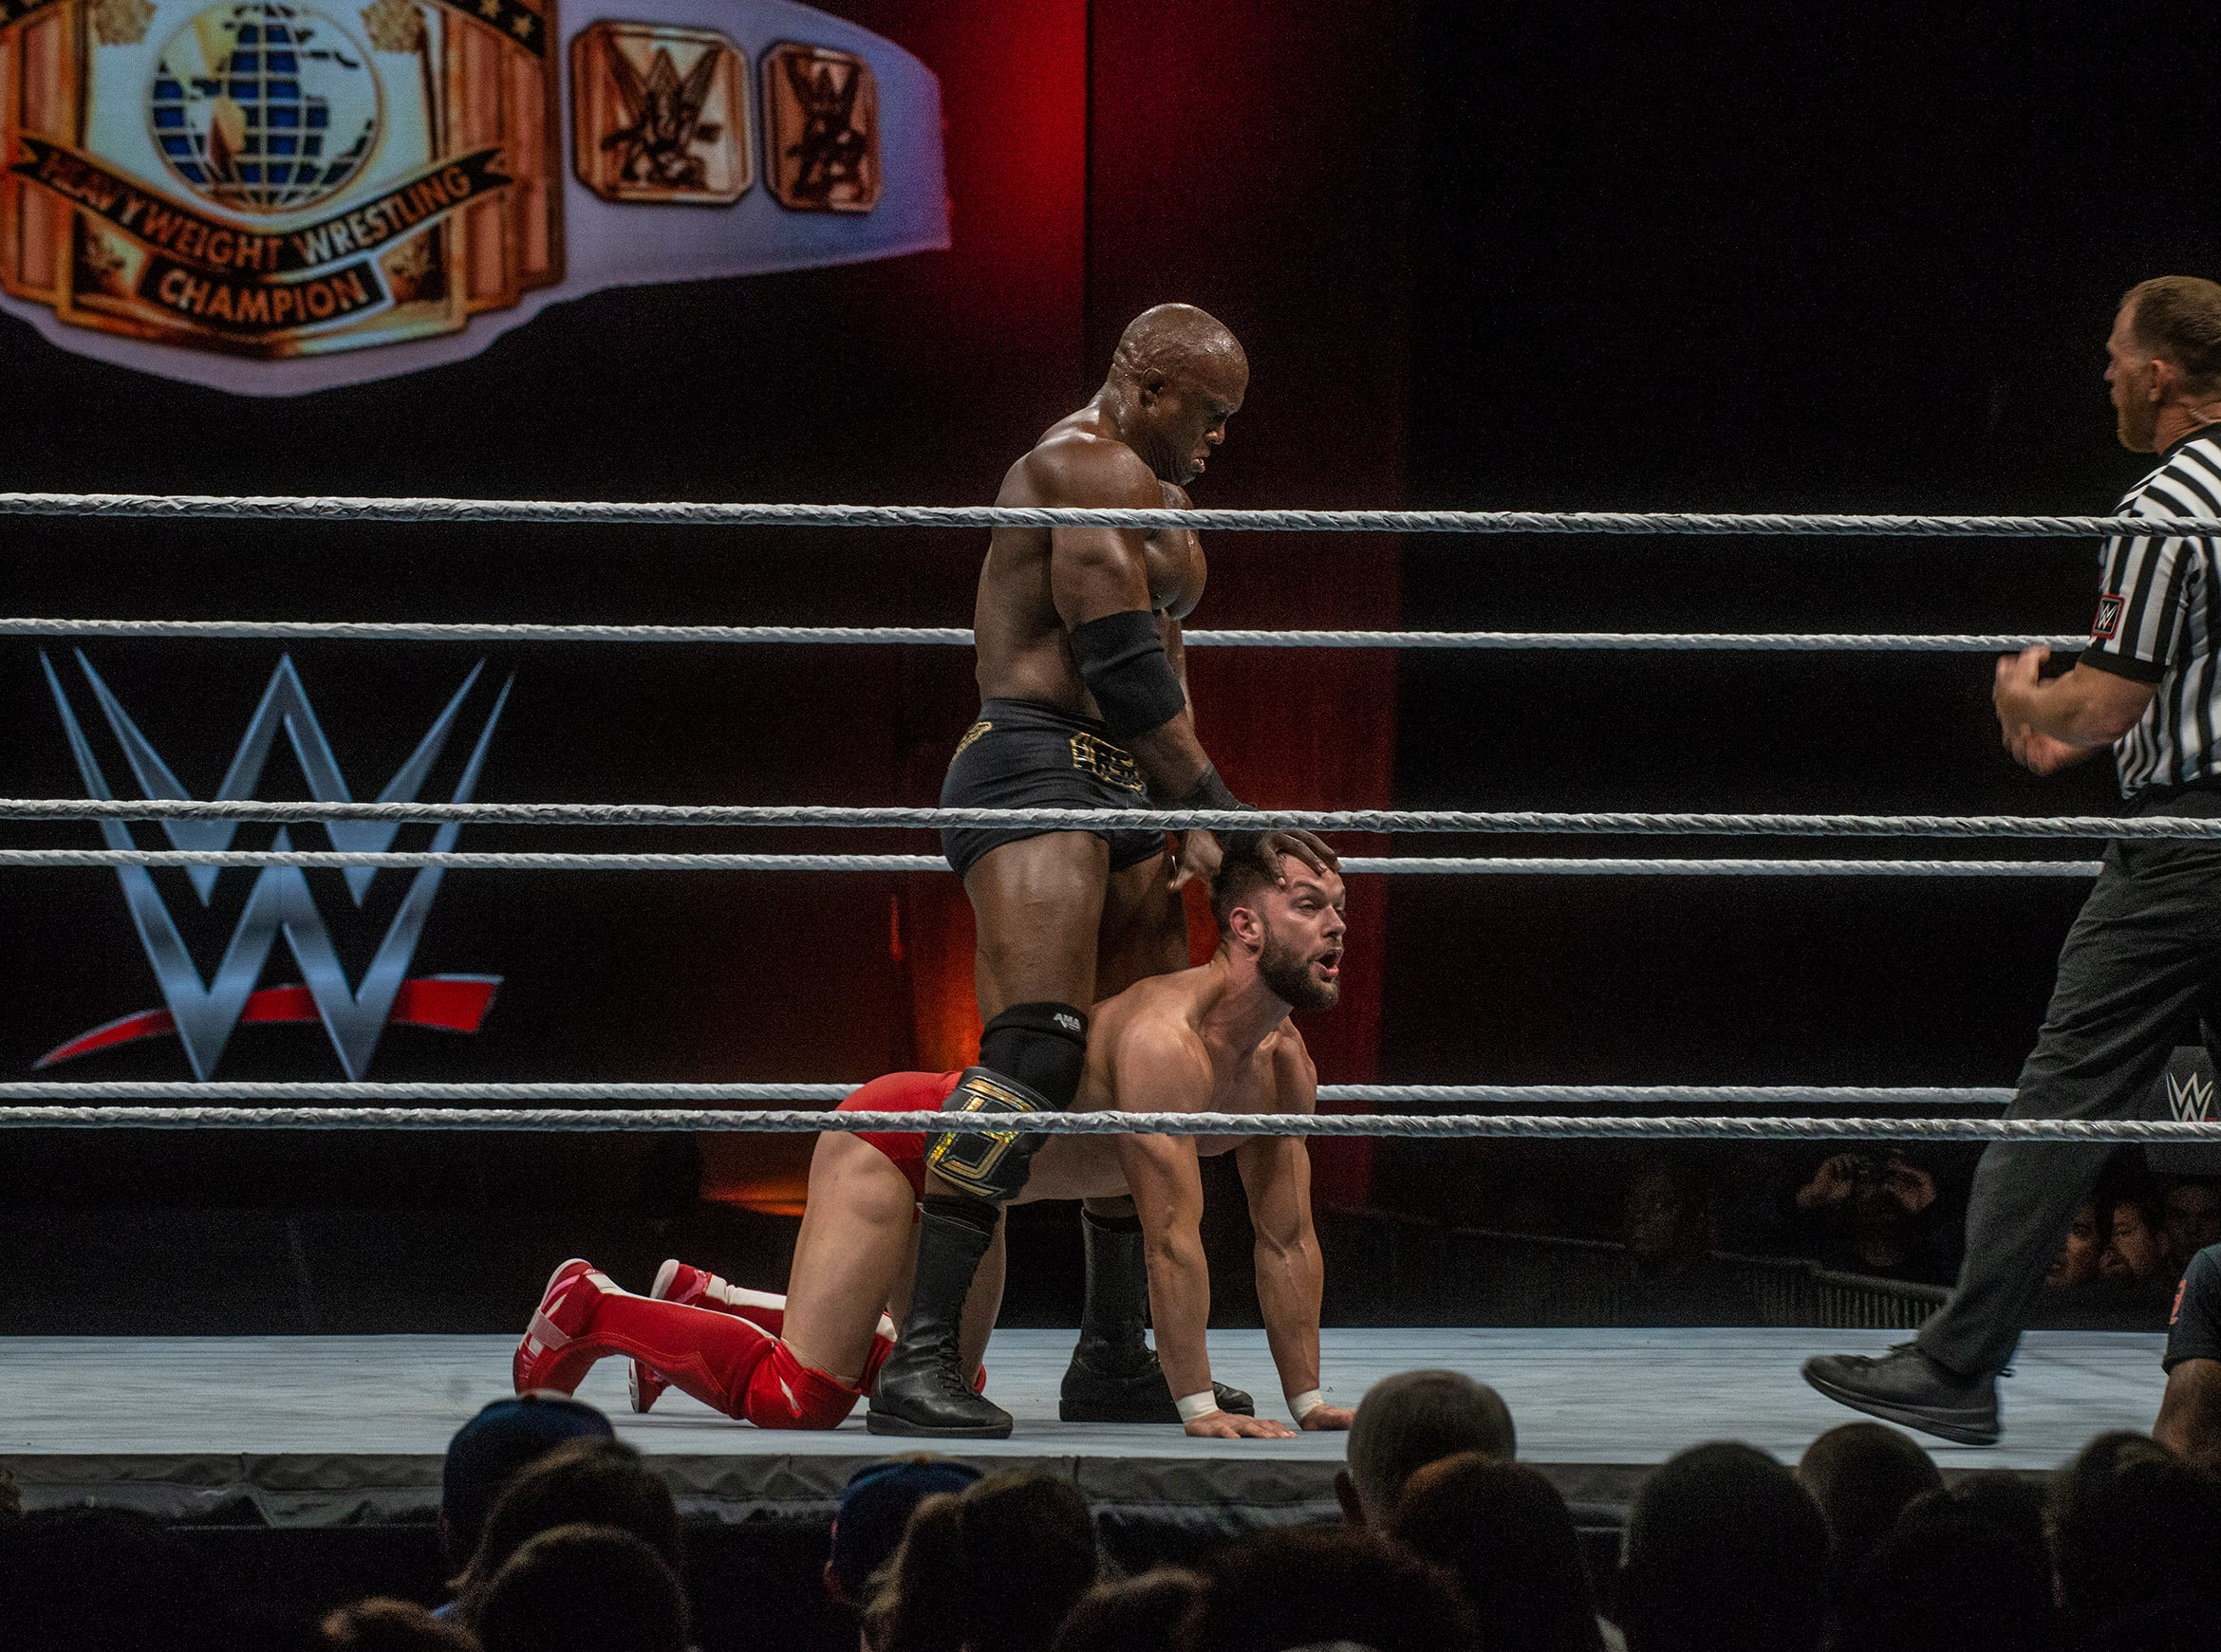 Intercontinental Heavyweight Wrestling Champion Finn Balor defends his title against Bobby Lashley. WWE Live Road to Wrestlemania came to Garrett Coliseum in Montgomery on Sunday, Feb. 24, 2019.